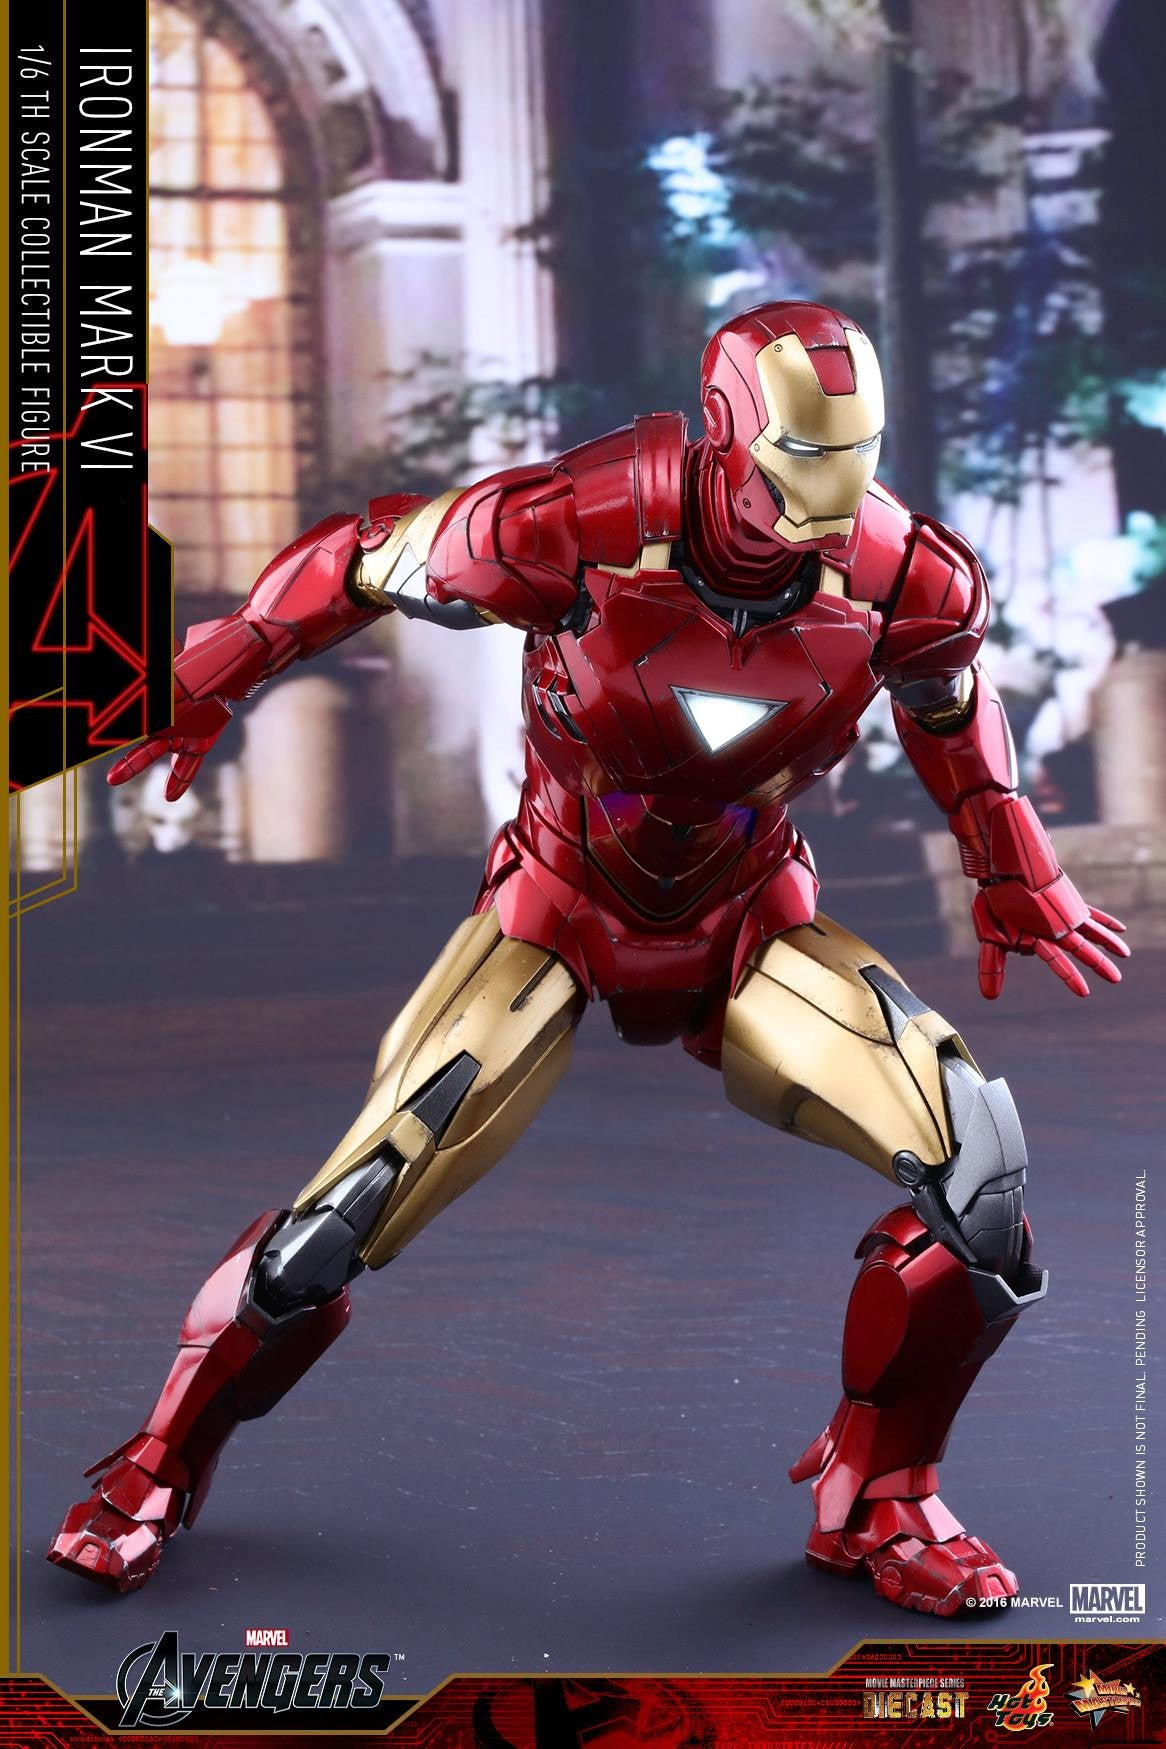 Hot Toys - MMS378D17 - The Avengers - Iron Man Mark VI (DIECAST) (Normal Edition) - Marvelous Toys - 13